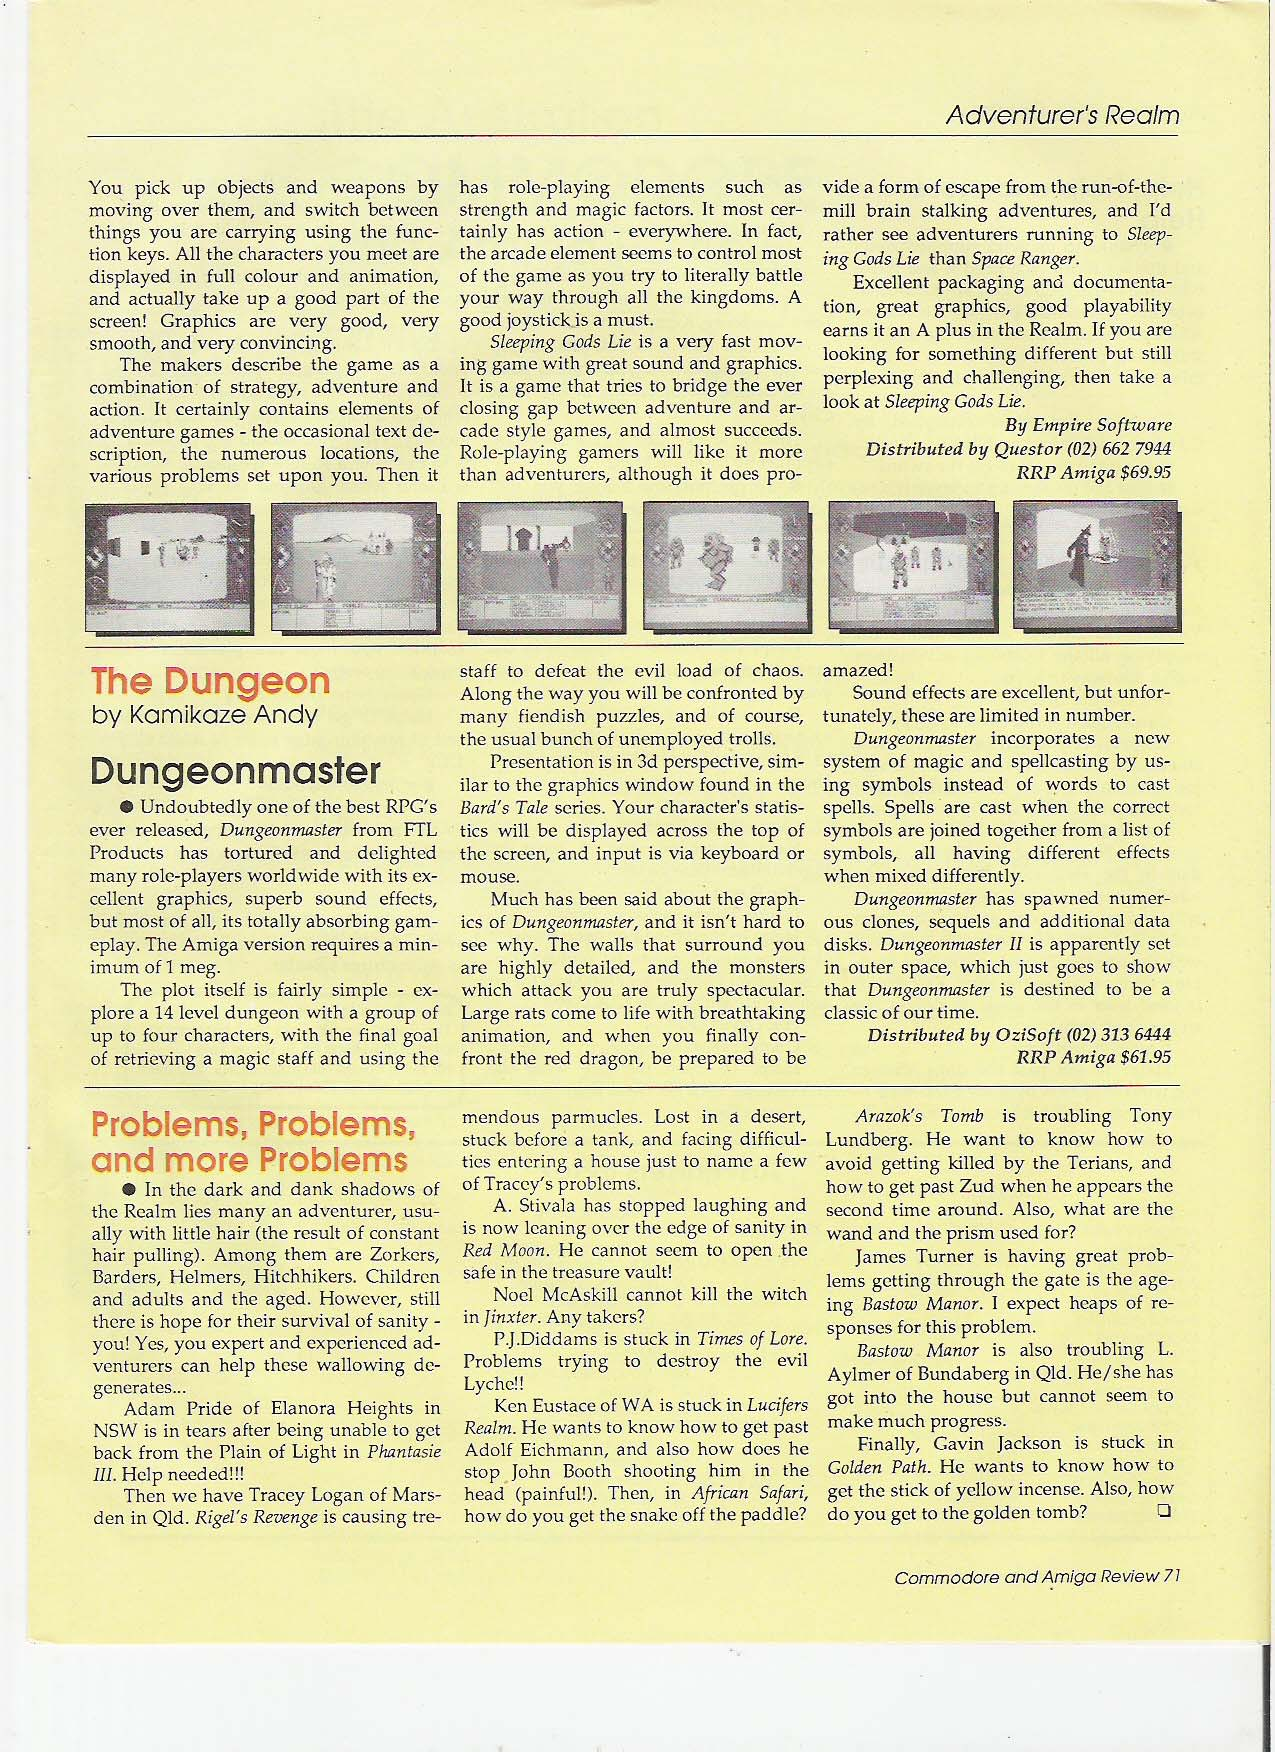 Dungeon Master for Amiga Review published in Australian magazine 'ACAR', Vol. 10 No. 6, October 1989, Page 71